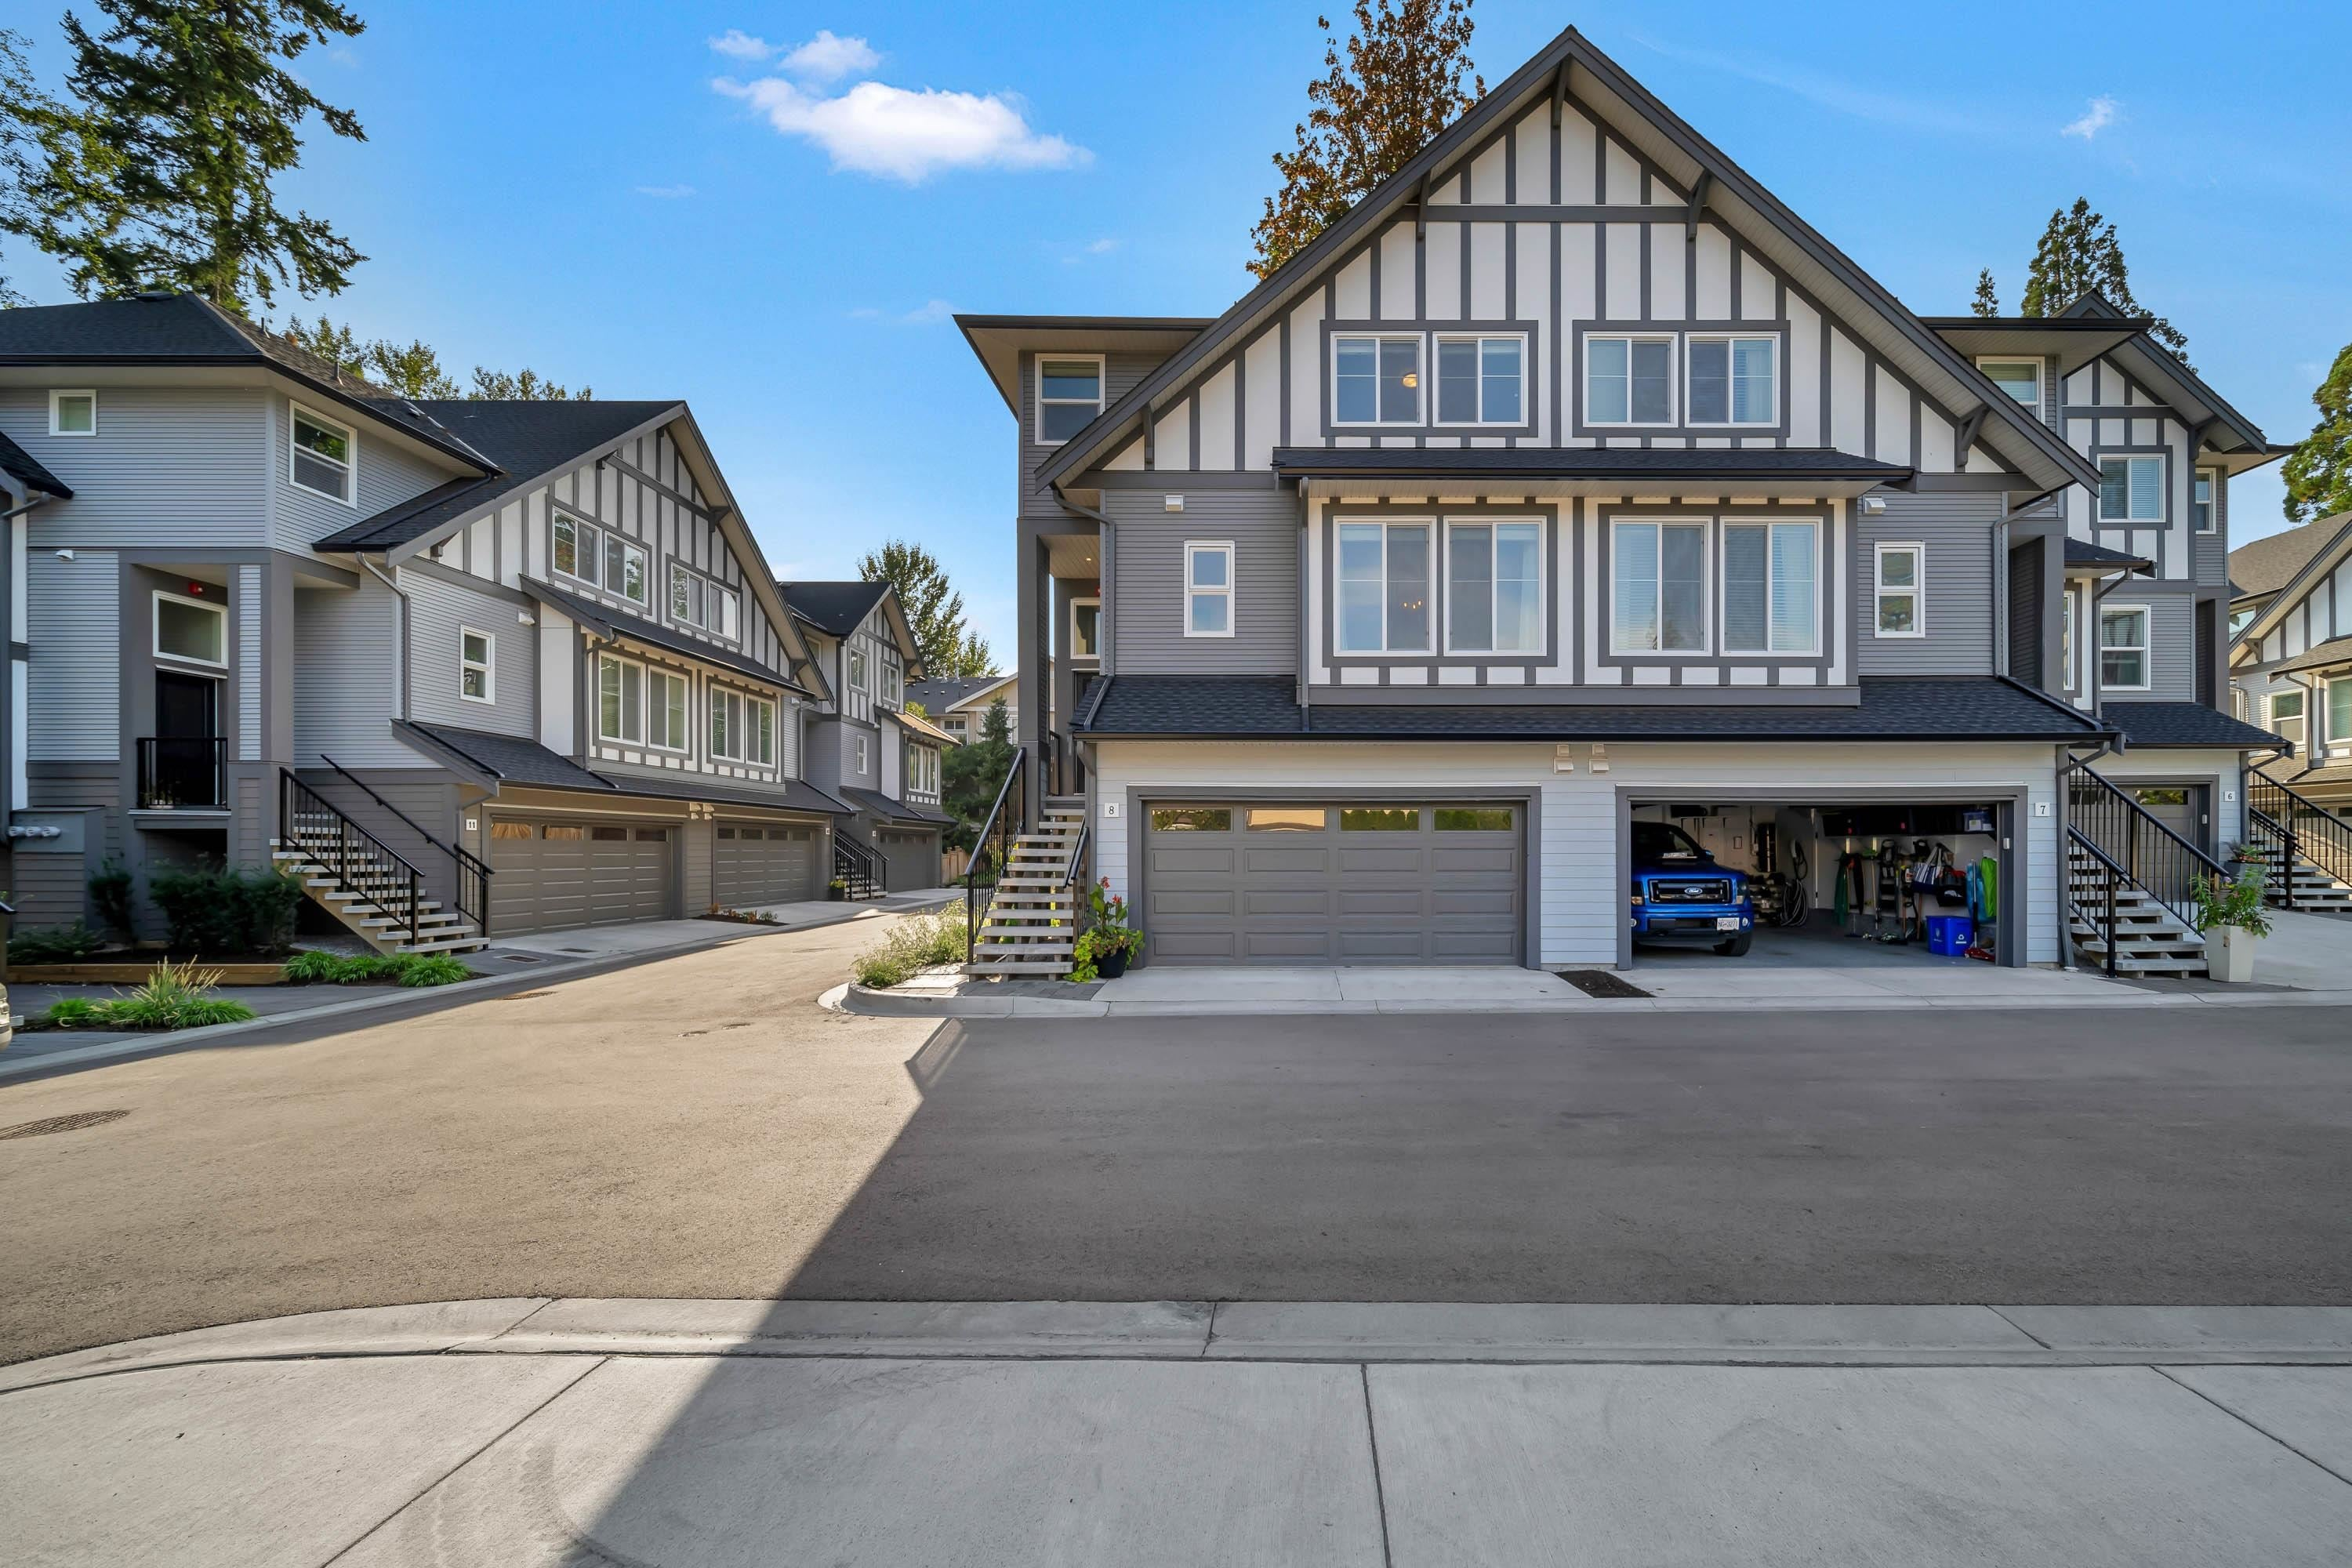 8 9567 217A STREET - Fort Langley Townhouse for sale, 4 Bedrooms (R2610741) - #1